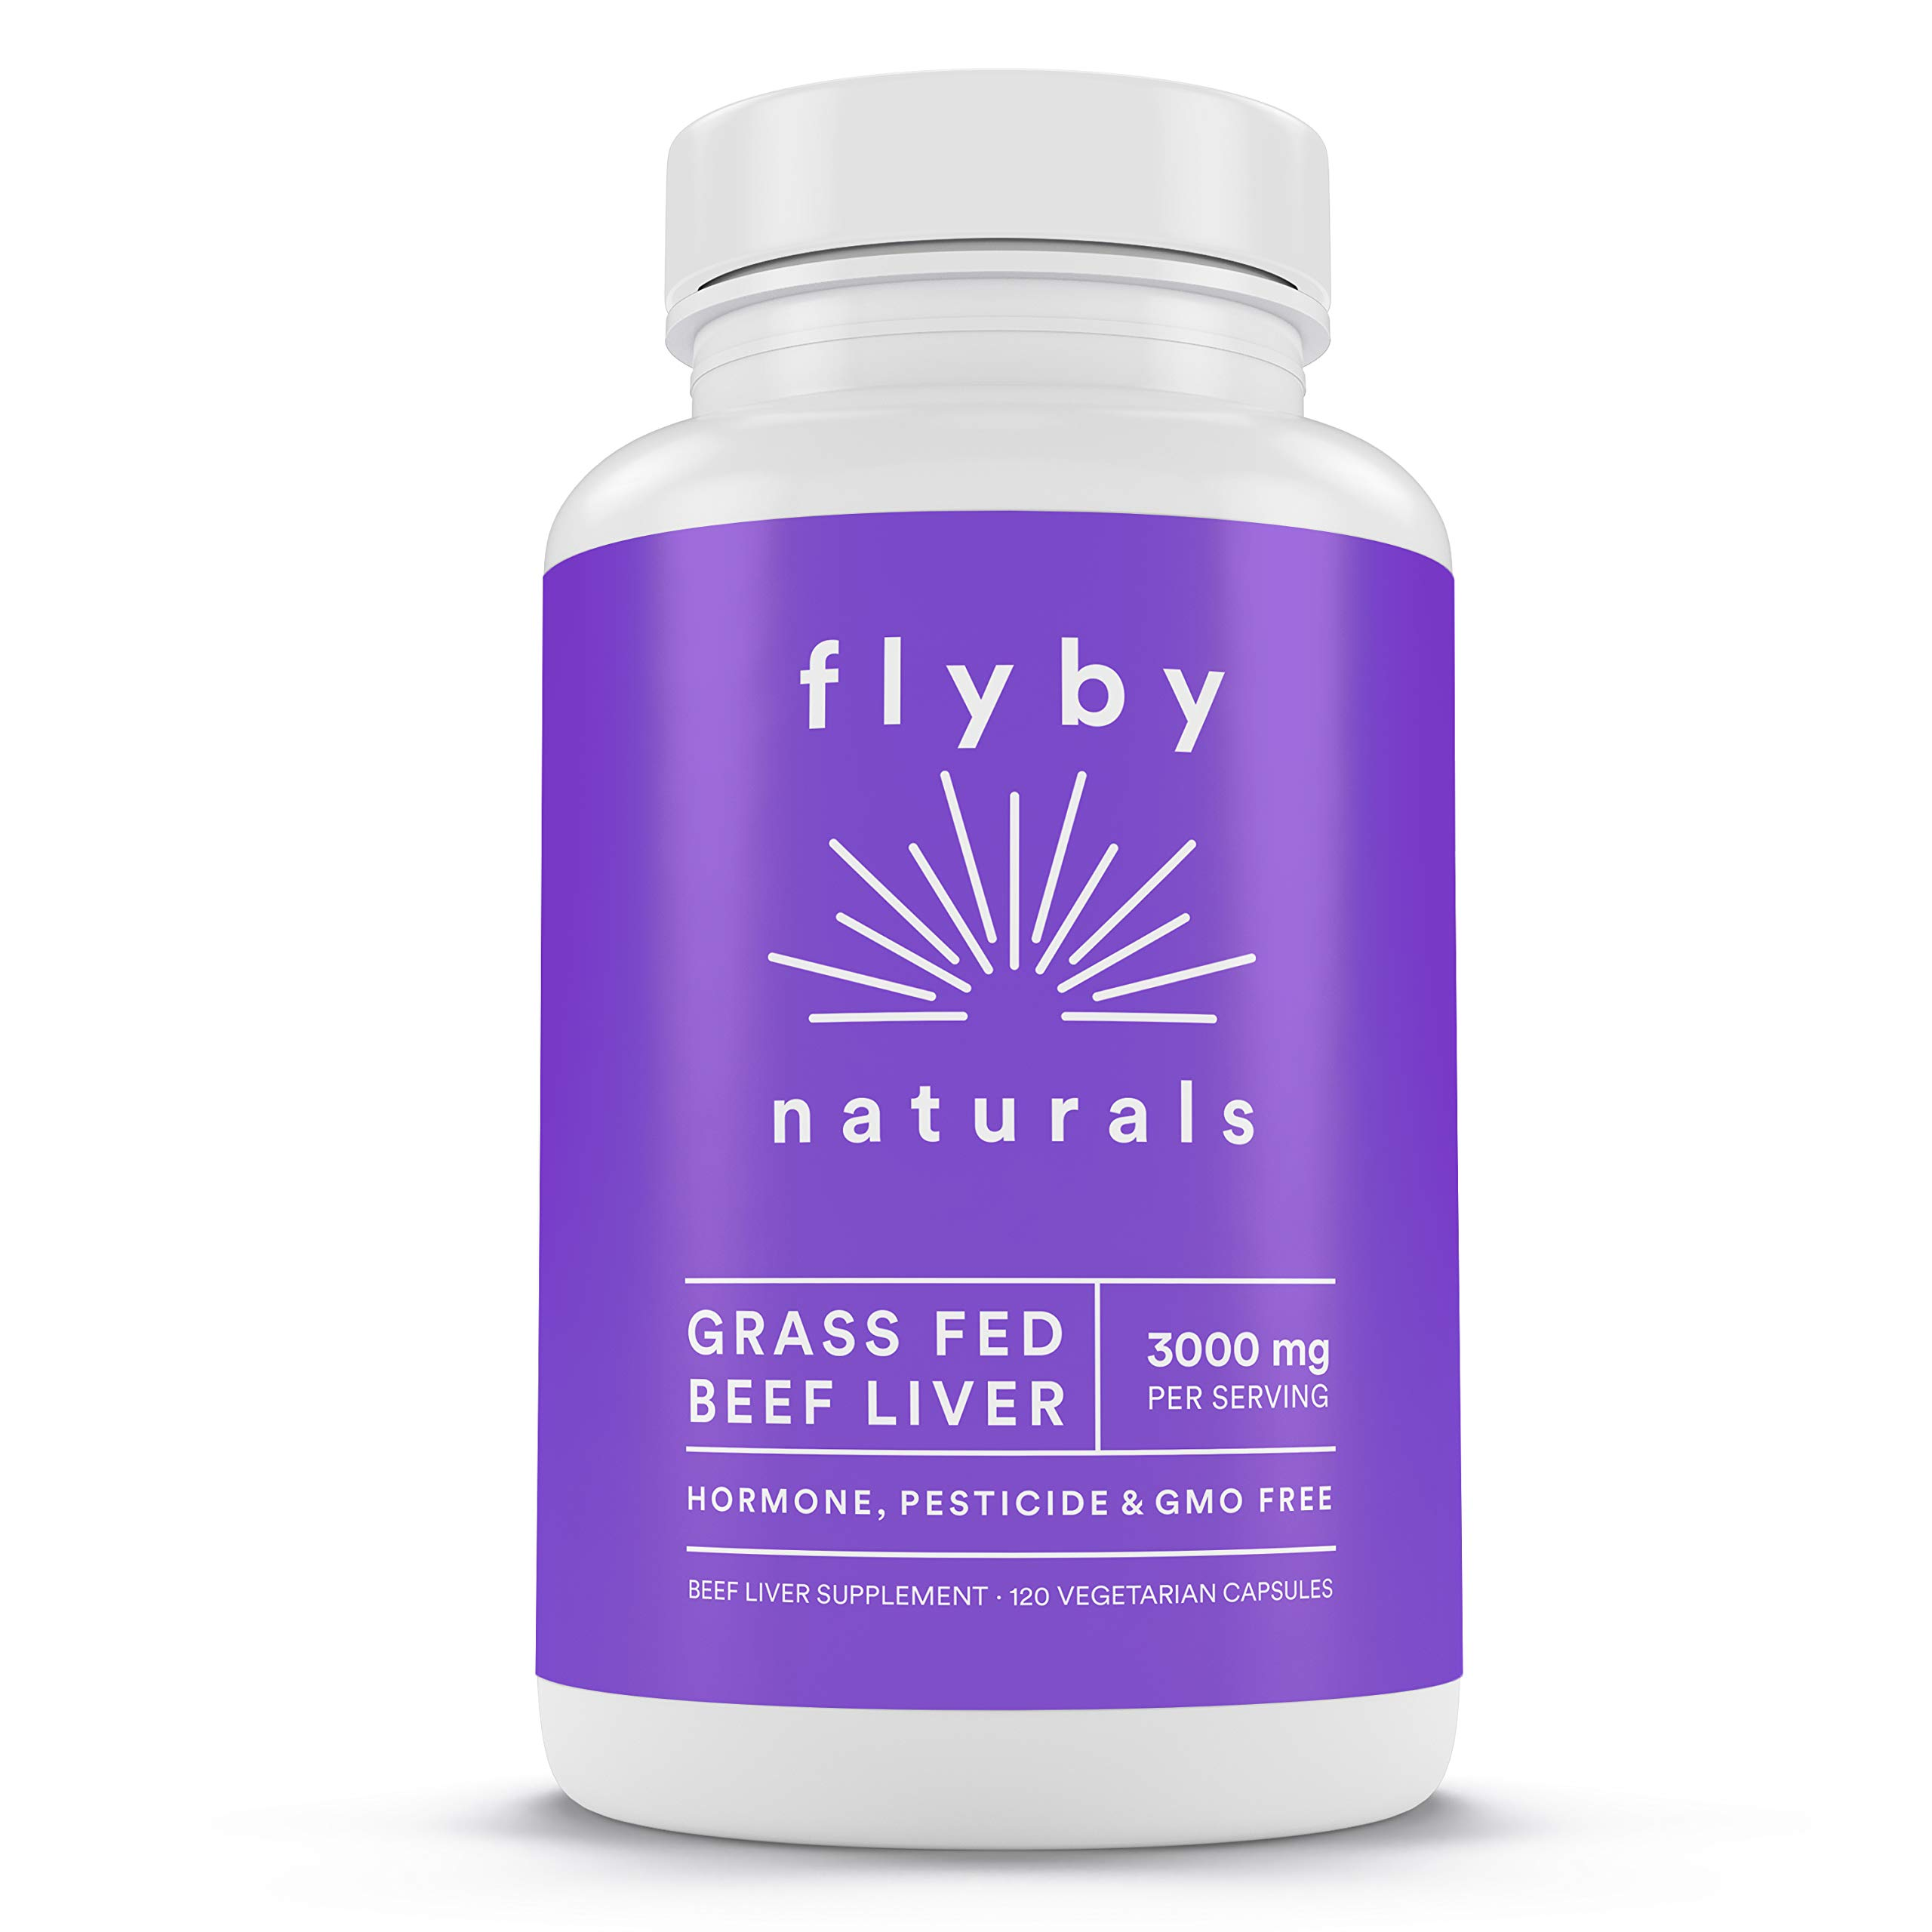 Grass Fed Beef Liver (120 Capsules - 3000 mg) - Iron, Vitamin A, Amino Acids, Protein, B12 Tablets for Energy & Healthy Skin - Argentine Raised Cows & NO Hormones, Antibiotics, Chemicals, GMOs - Flyby by FLYBY